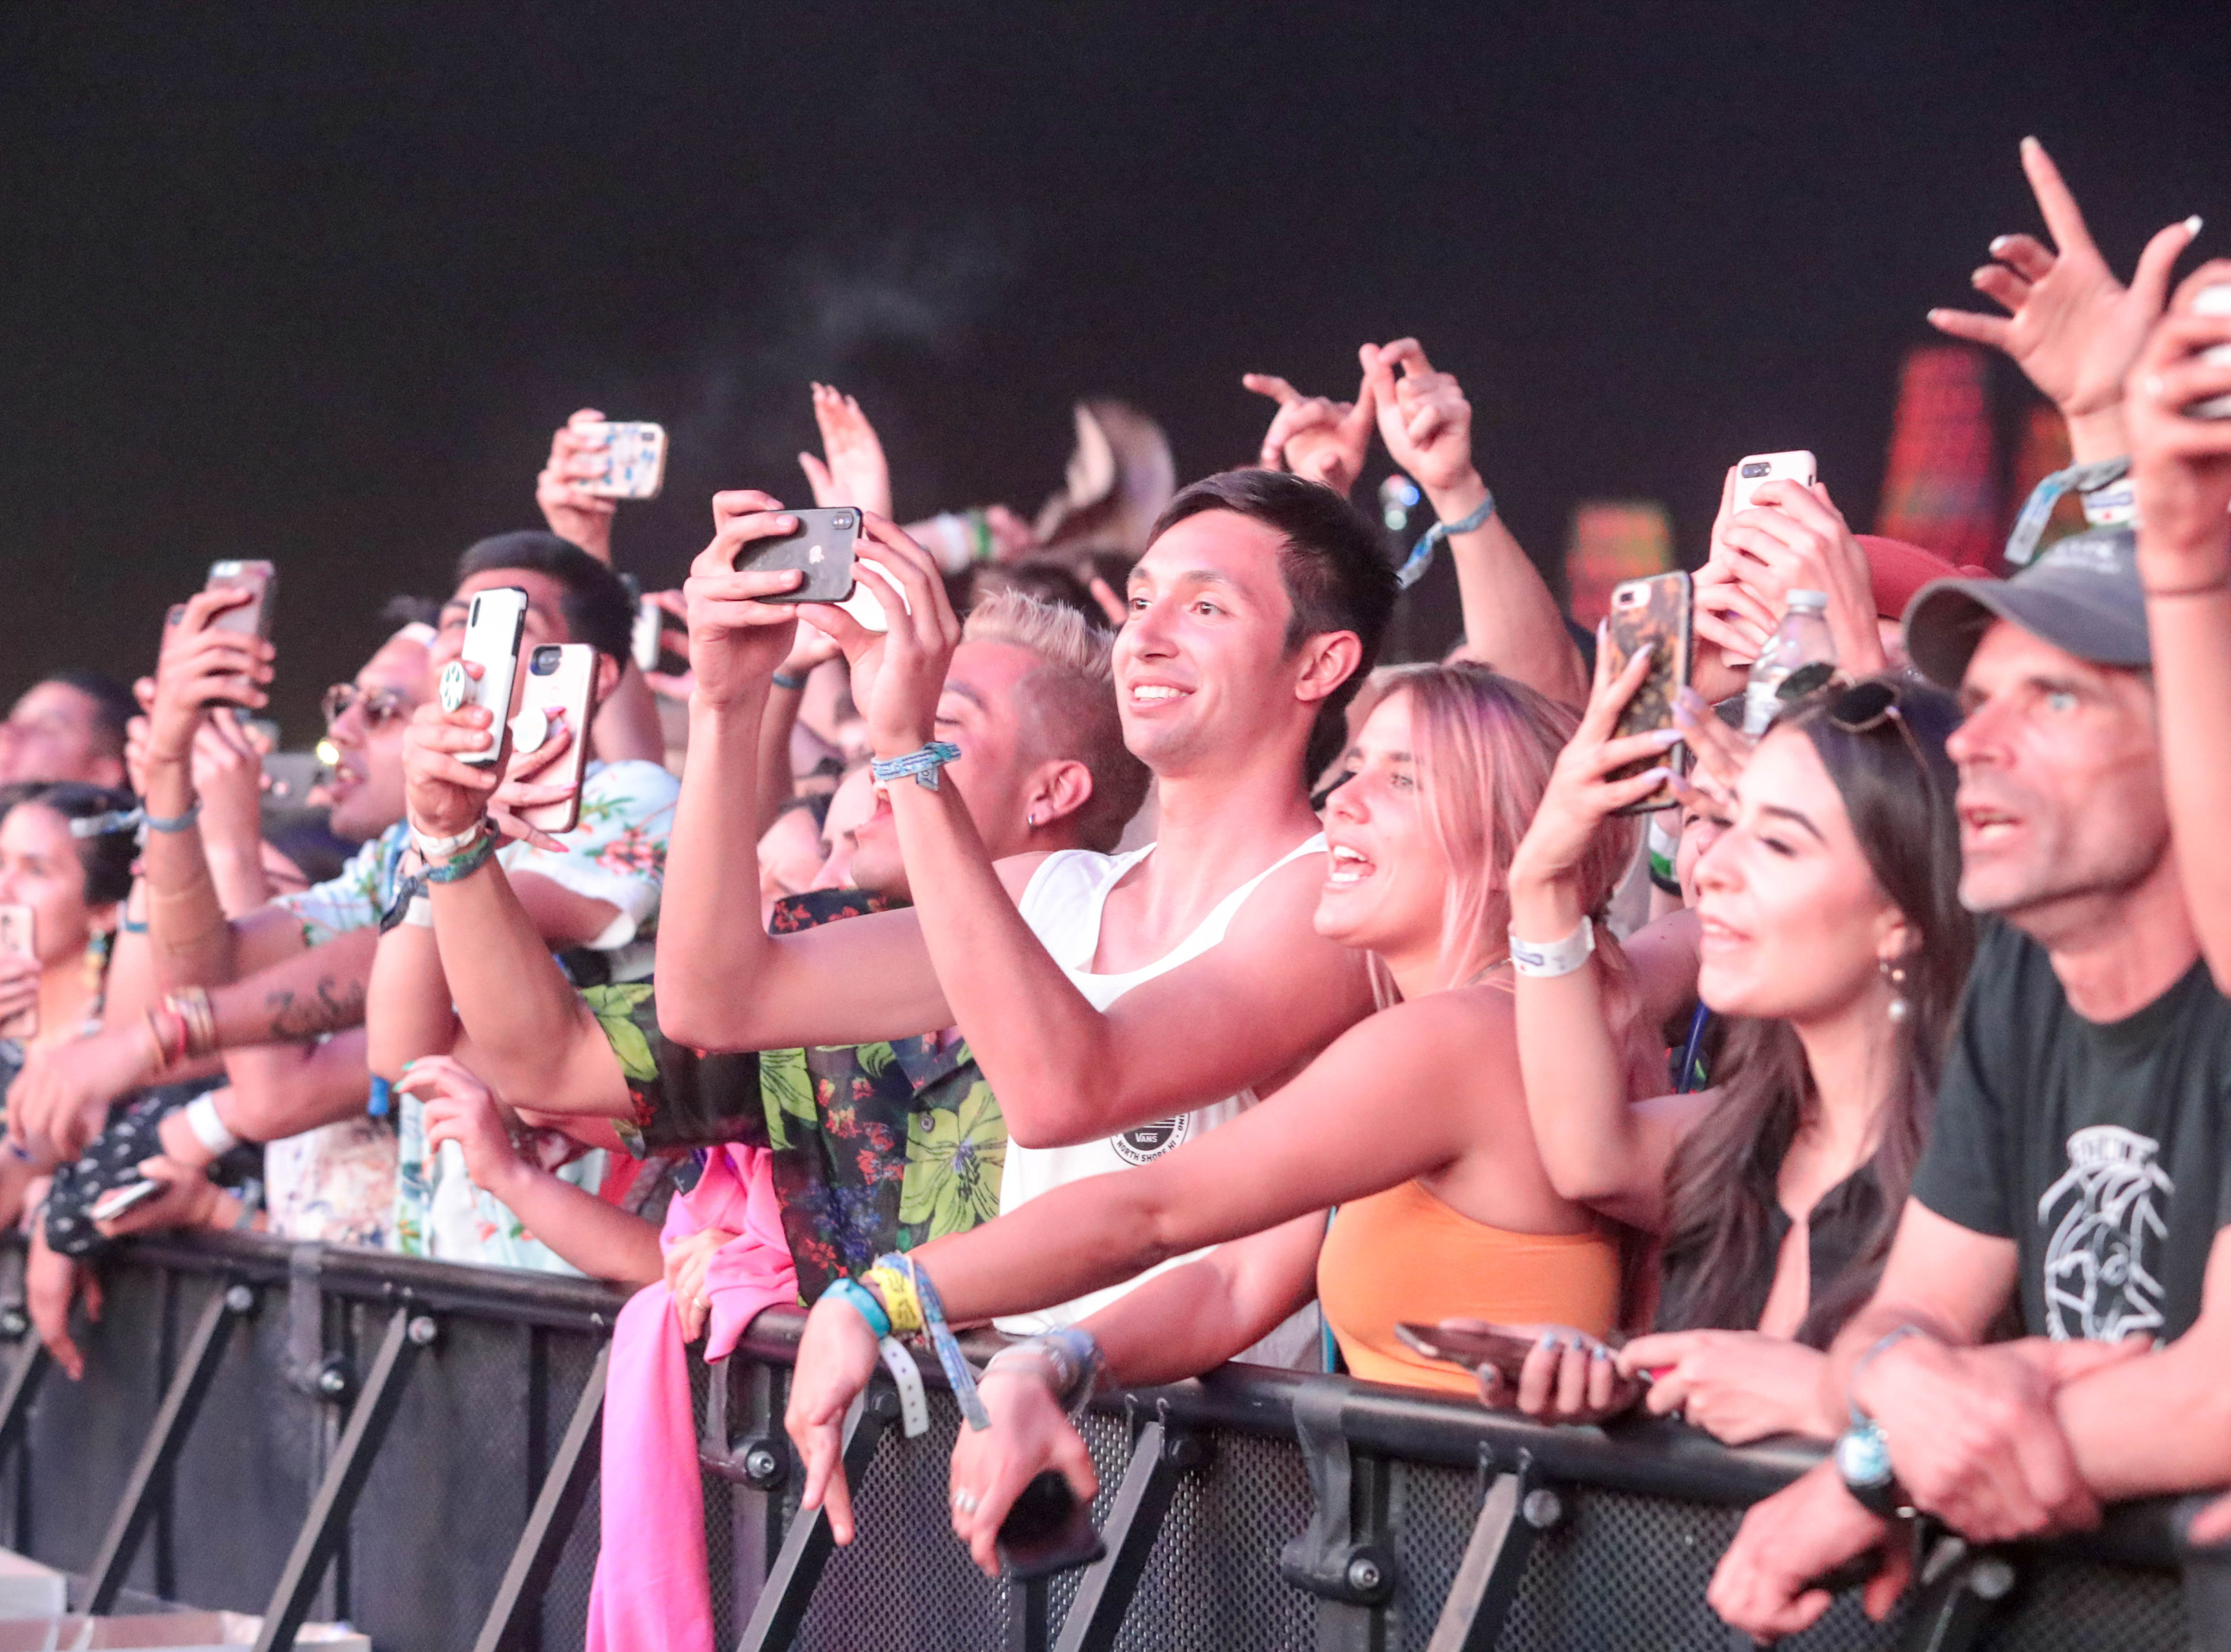 Fans listen as Weezer performs on Saturday, April 13, 2019 at Coachella Valley Music and Arts Festival in Indio, Calif.